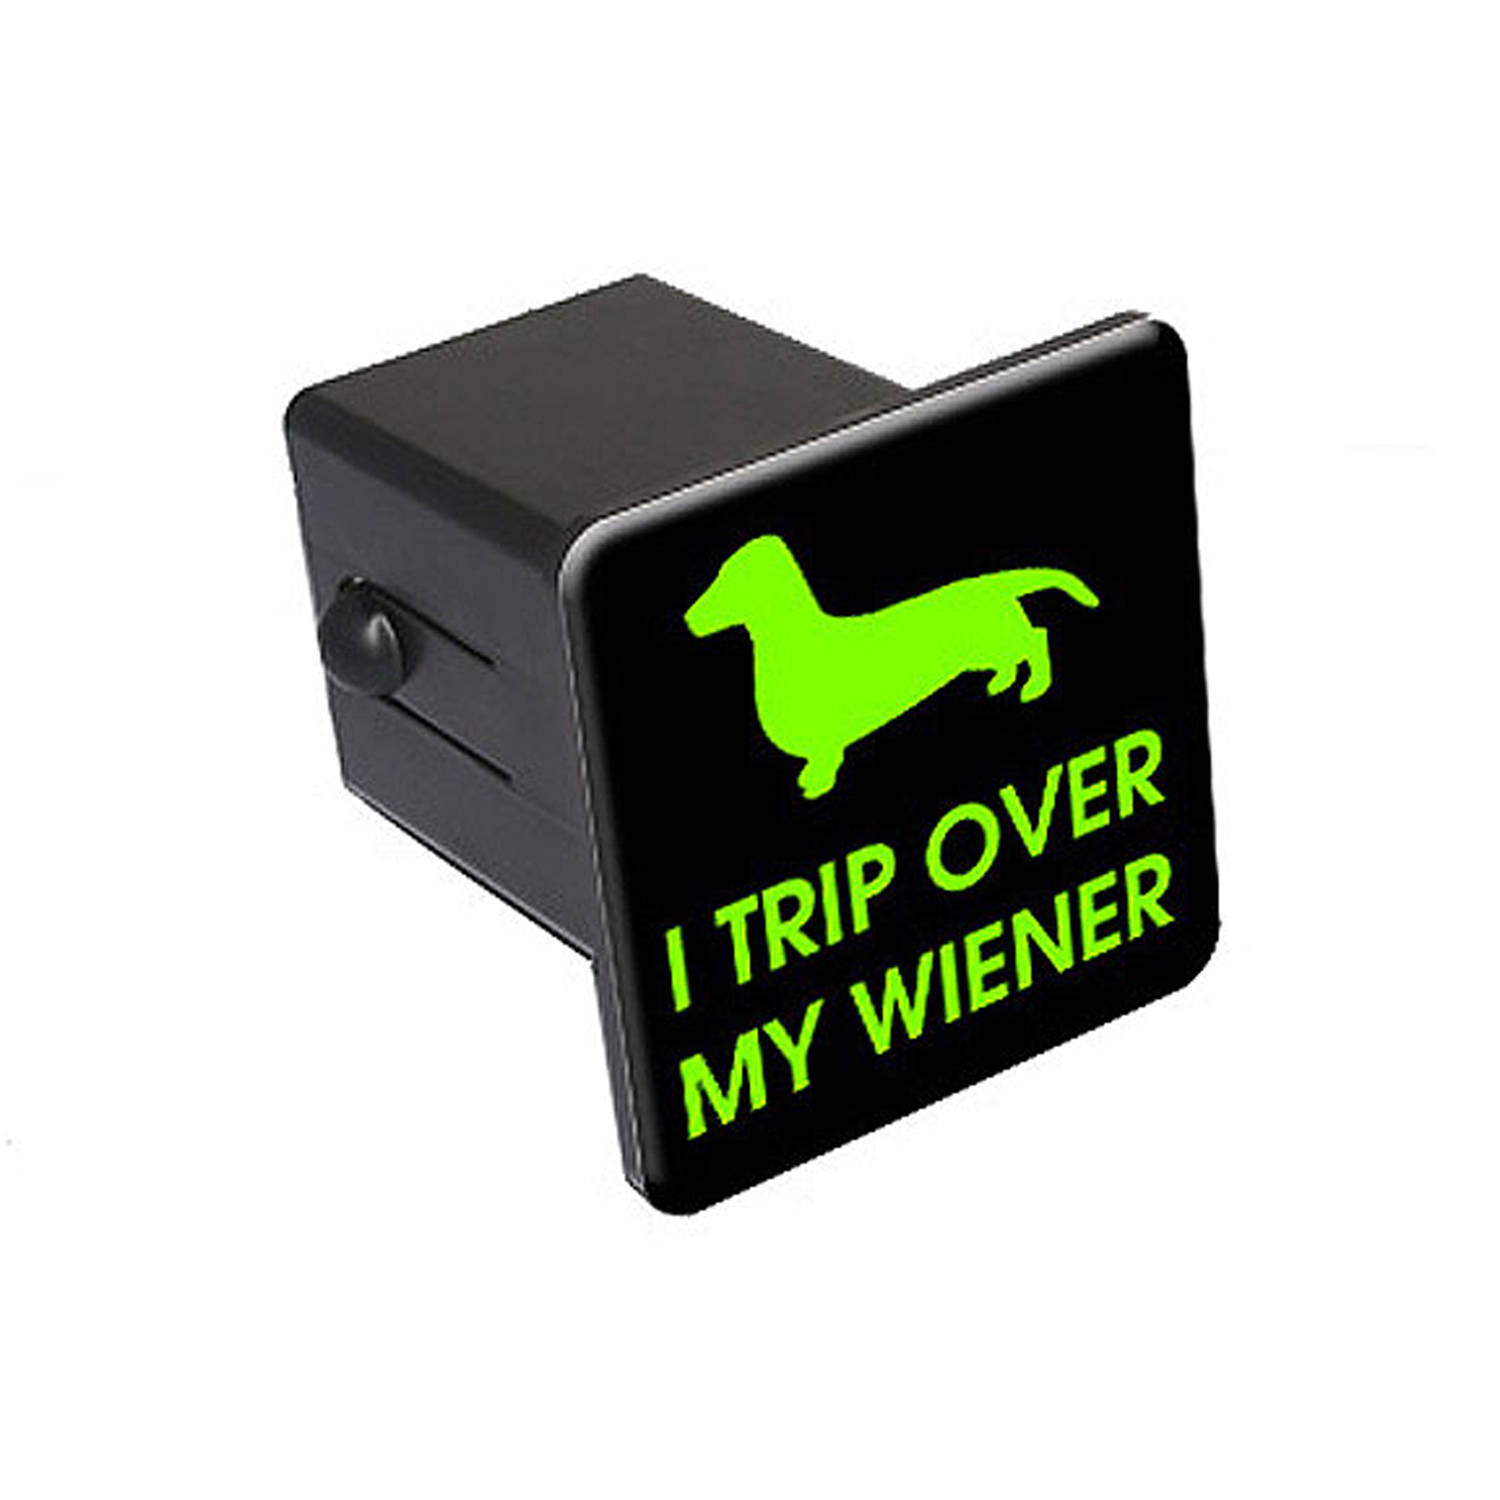 "Trip Over My Wiener, Dachshund Dog 2"" Tow Trailer Hitch Cover Plug Insert"